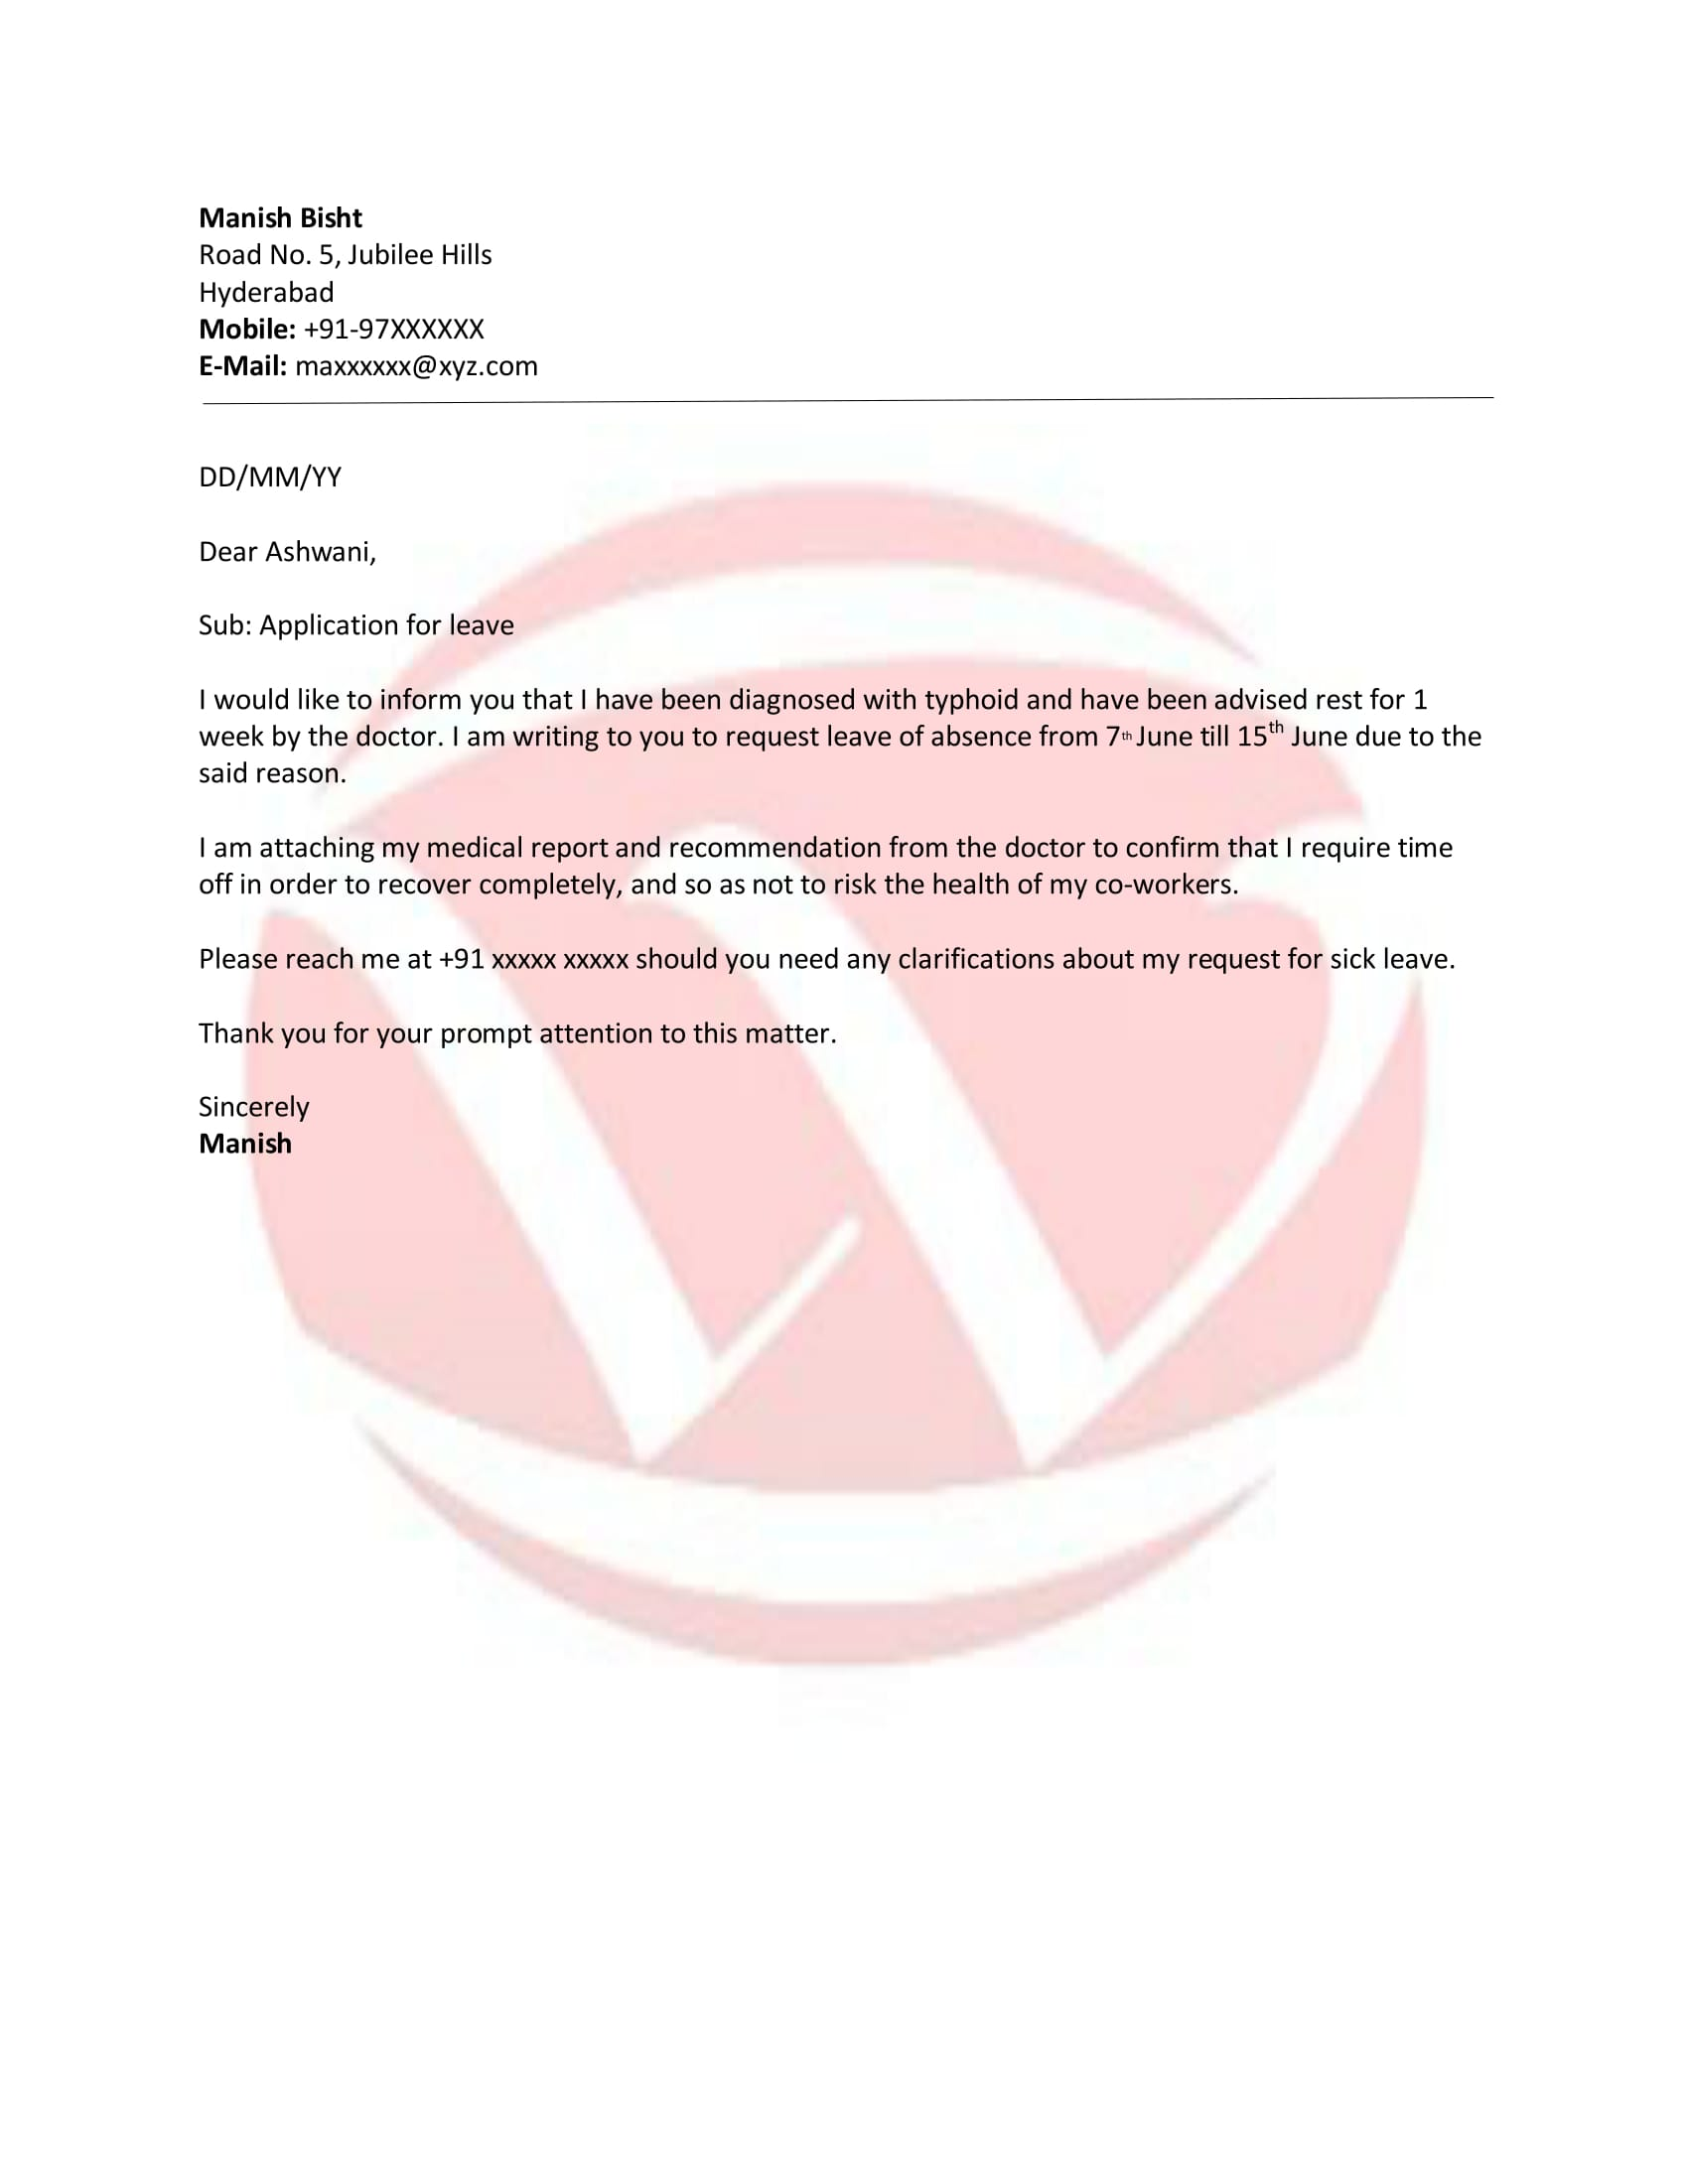 Leave sample letter format download letter format templates leave sample letter altavistaventures